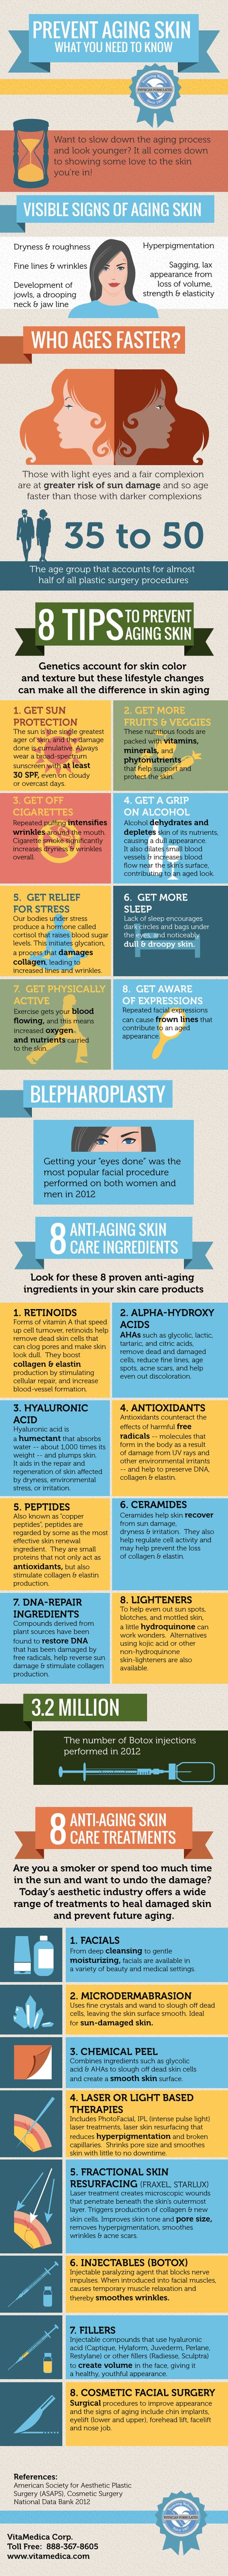 Infographic: Prevent Aging Skin What You Need To Know// Fulvic Acid is the most complex Acid found in nature, with over 60 trace metals. It is also the most effective free radical scavenger found naturally and cannot be synthesized.